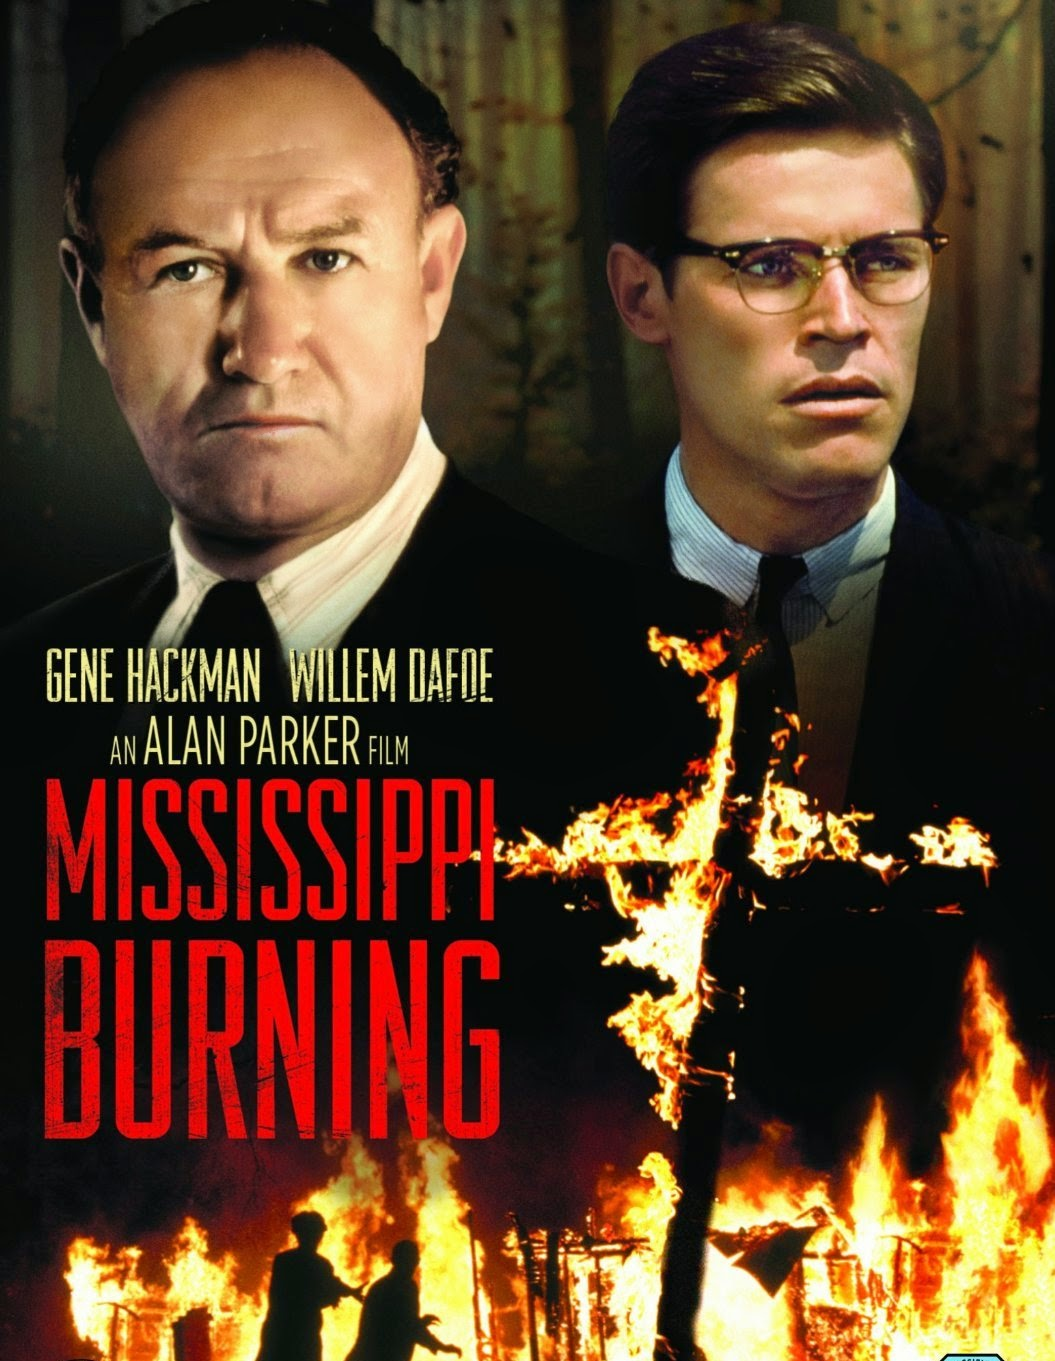 passion for movies mississippi burning a contemplative civil alan parker s ldquomississippi burningrdquo 1988 studies the turbulent race relations in the american south during 1960 s in that era chain of white